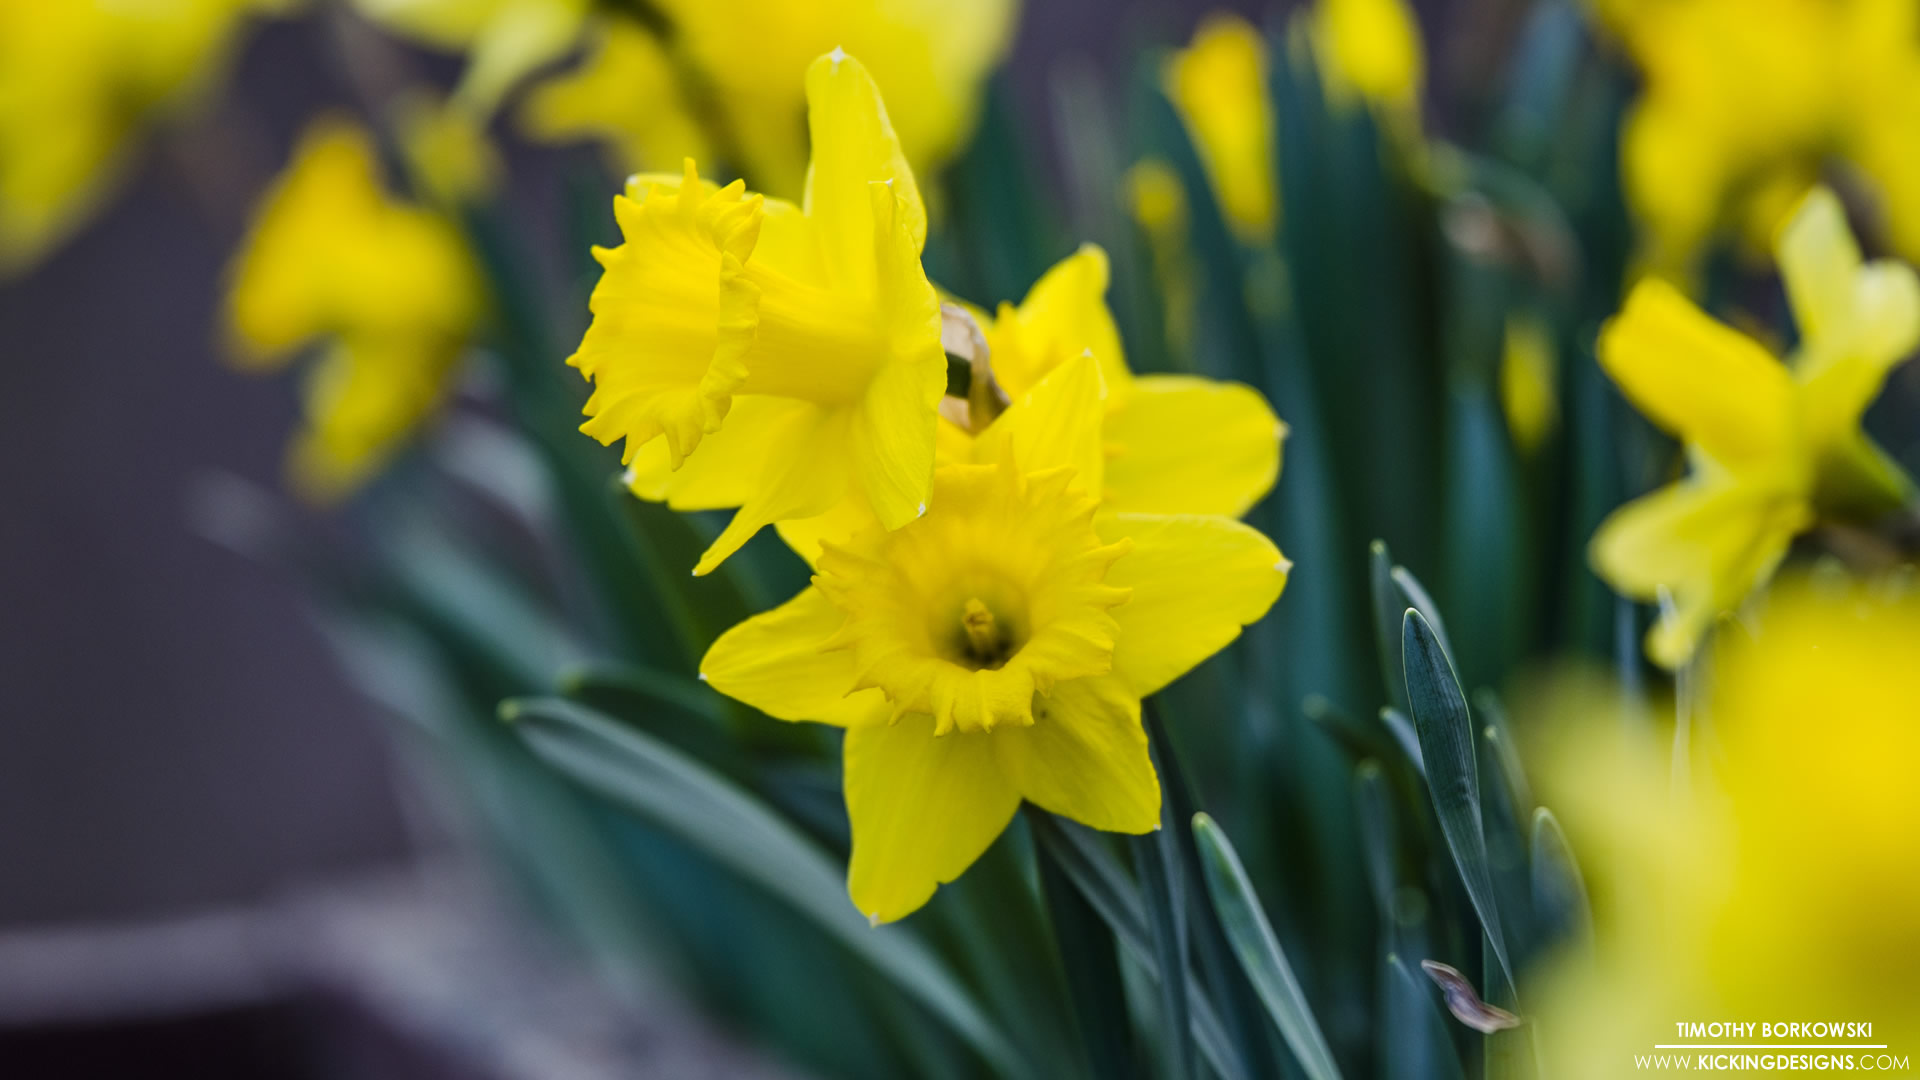 daffodils-4-17-2017_full-hd